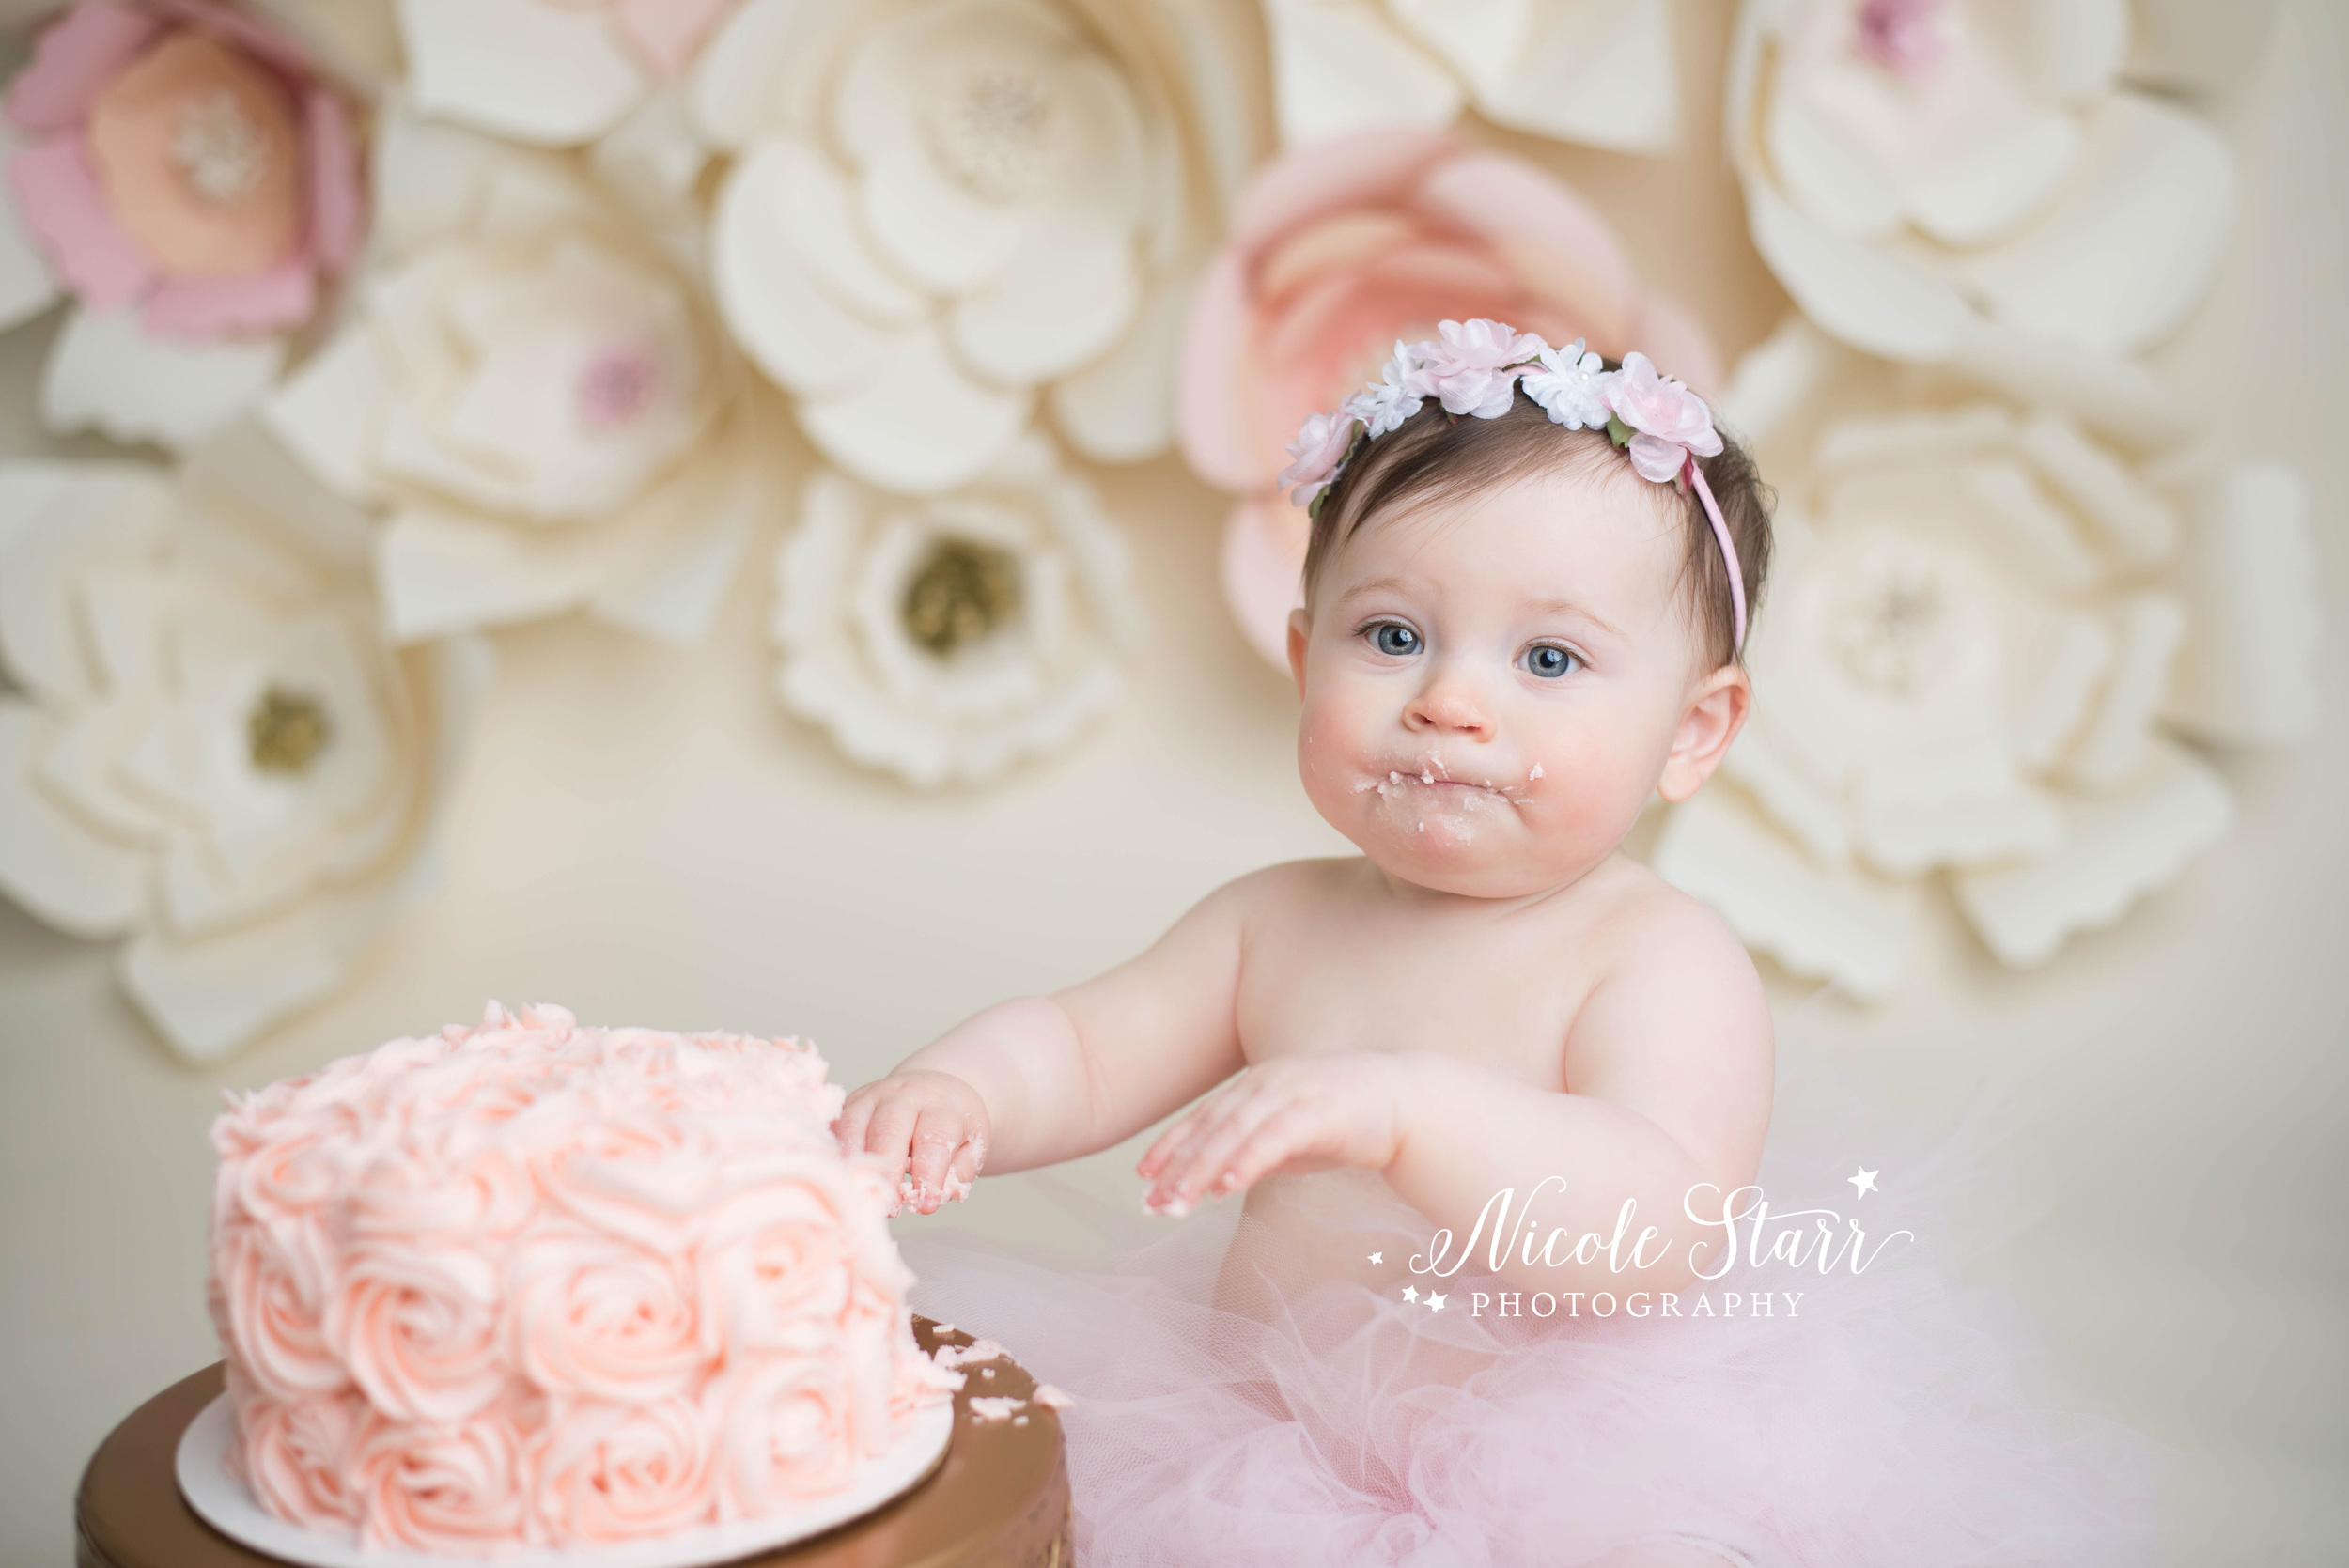 albany baby birthday cake smash photographer-18.jpg